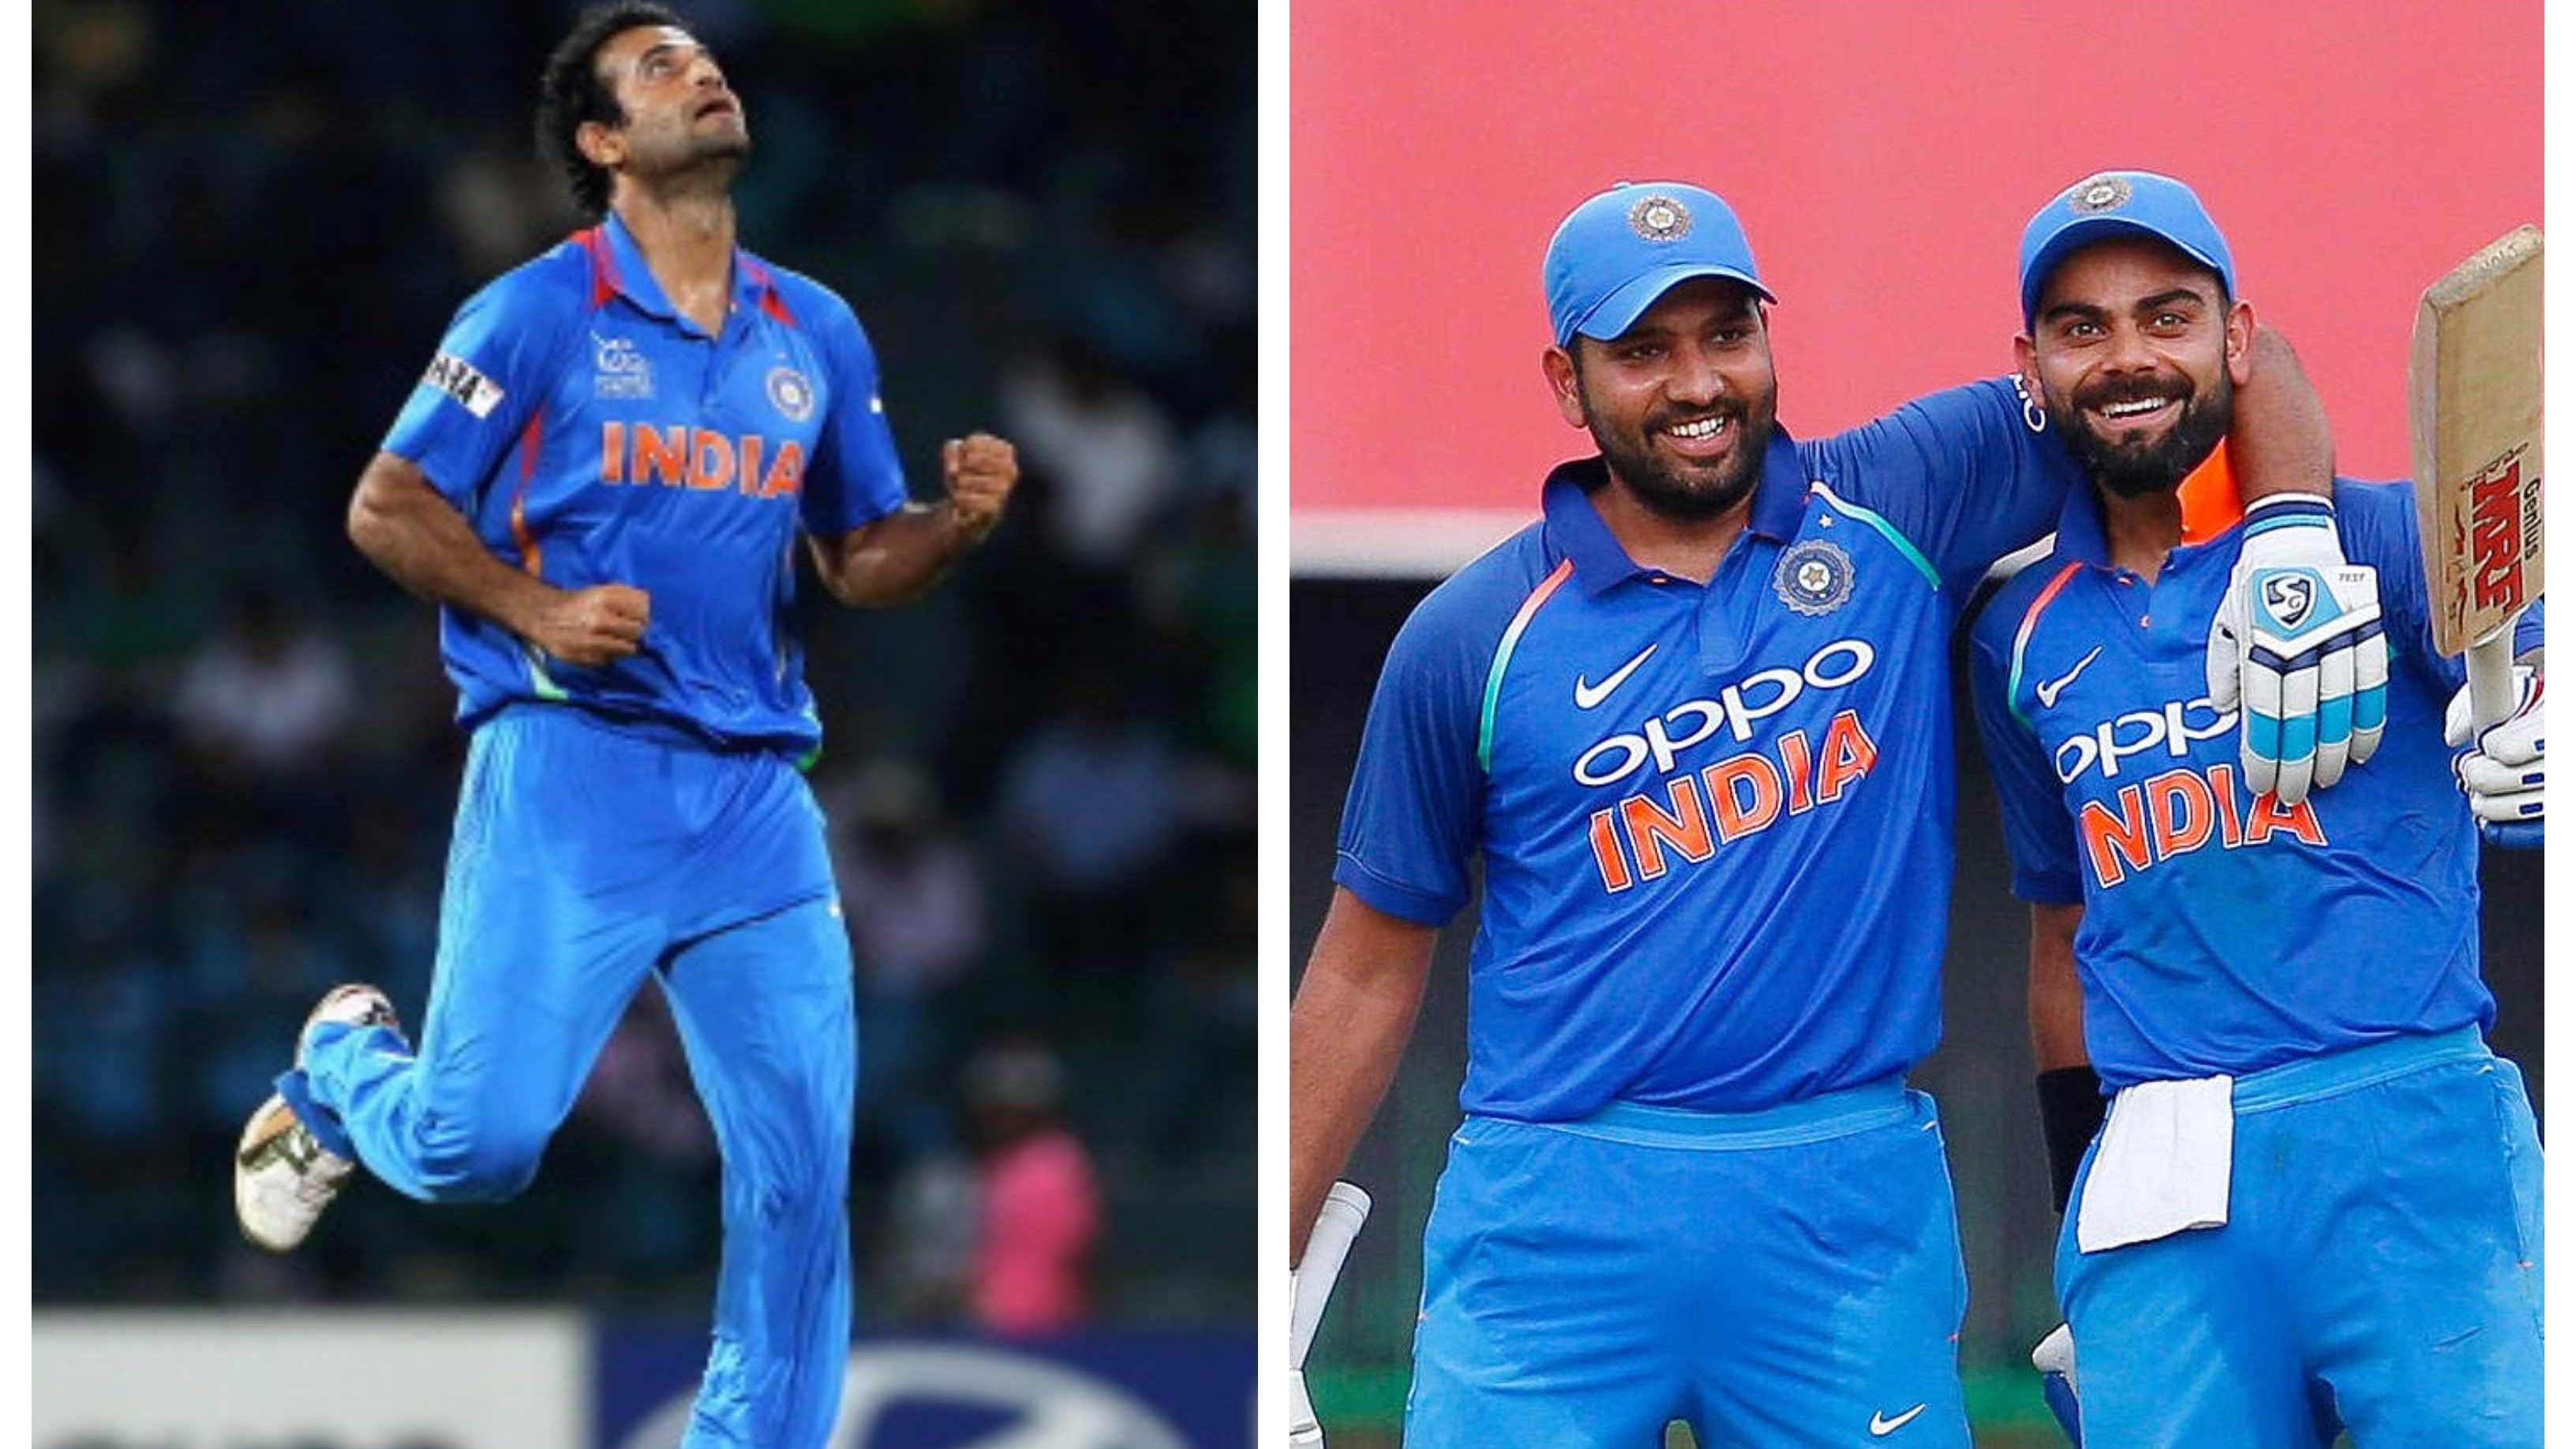 Irfan Pathan excited to play for Kandy in LPL 2020; explains how he would combat Kohli & Rohit